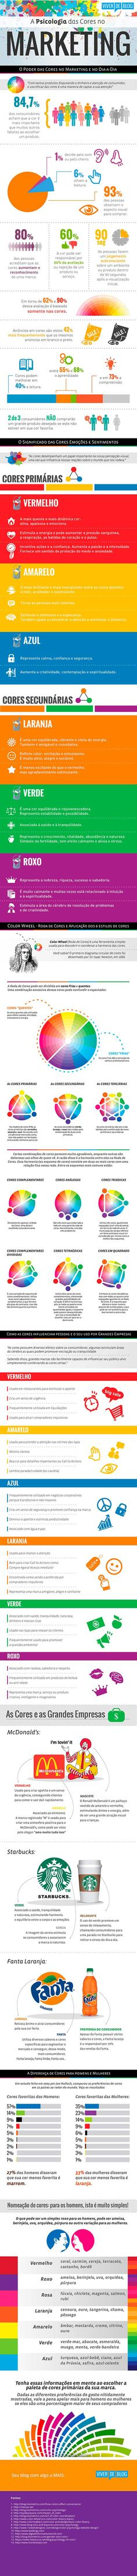 Infográfico: A Psicologia das Cores no Marketing